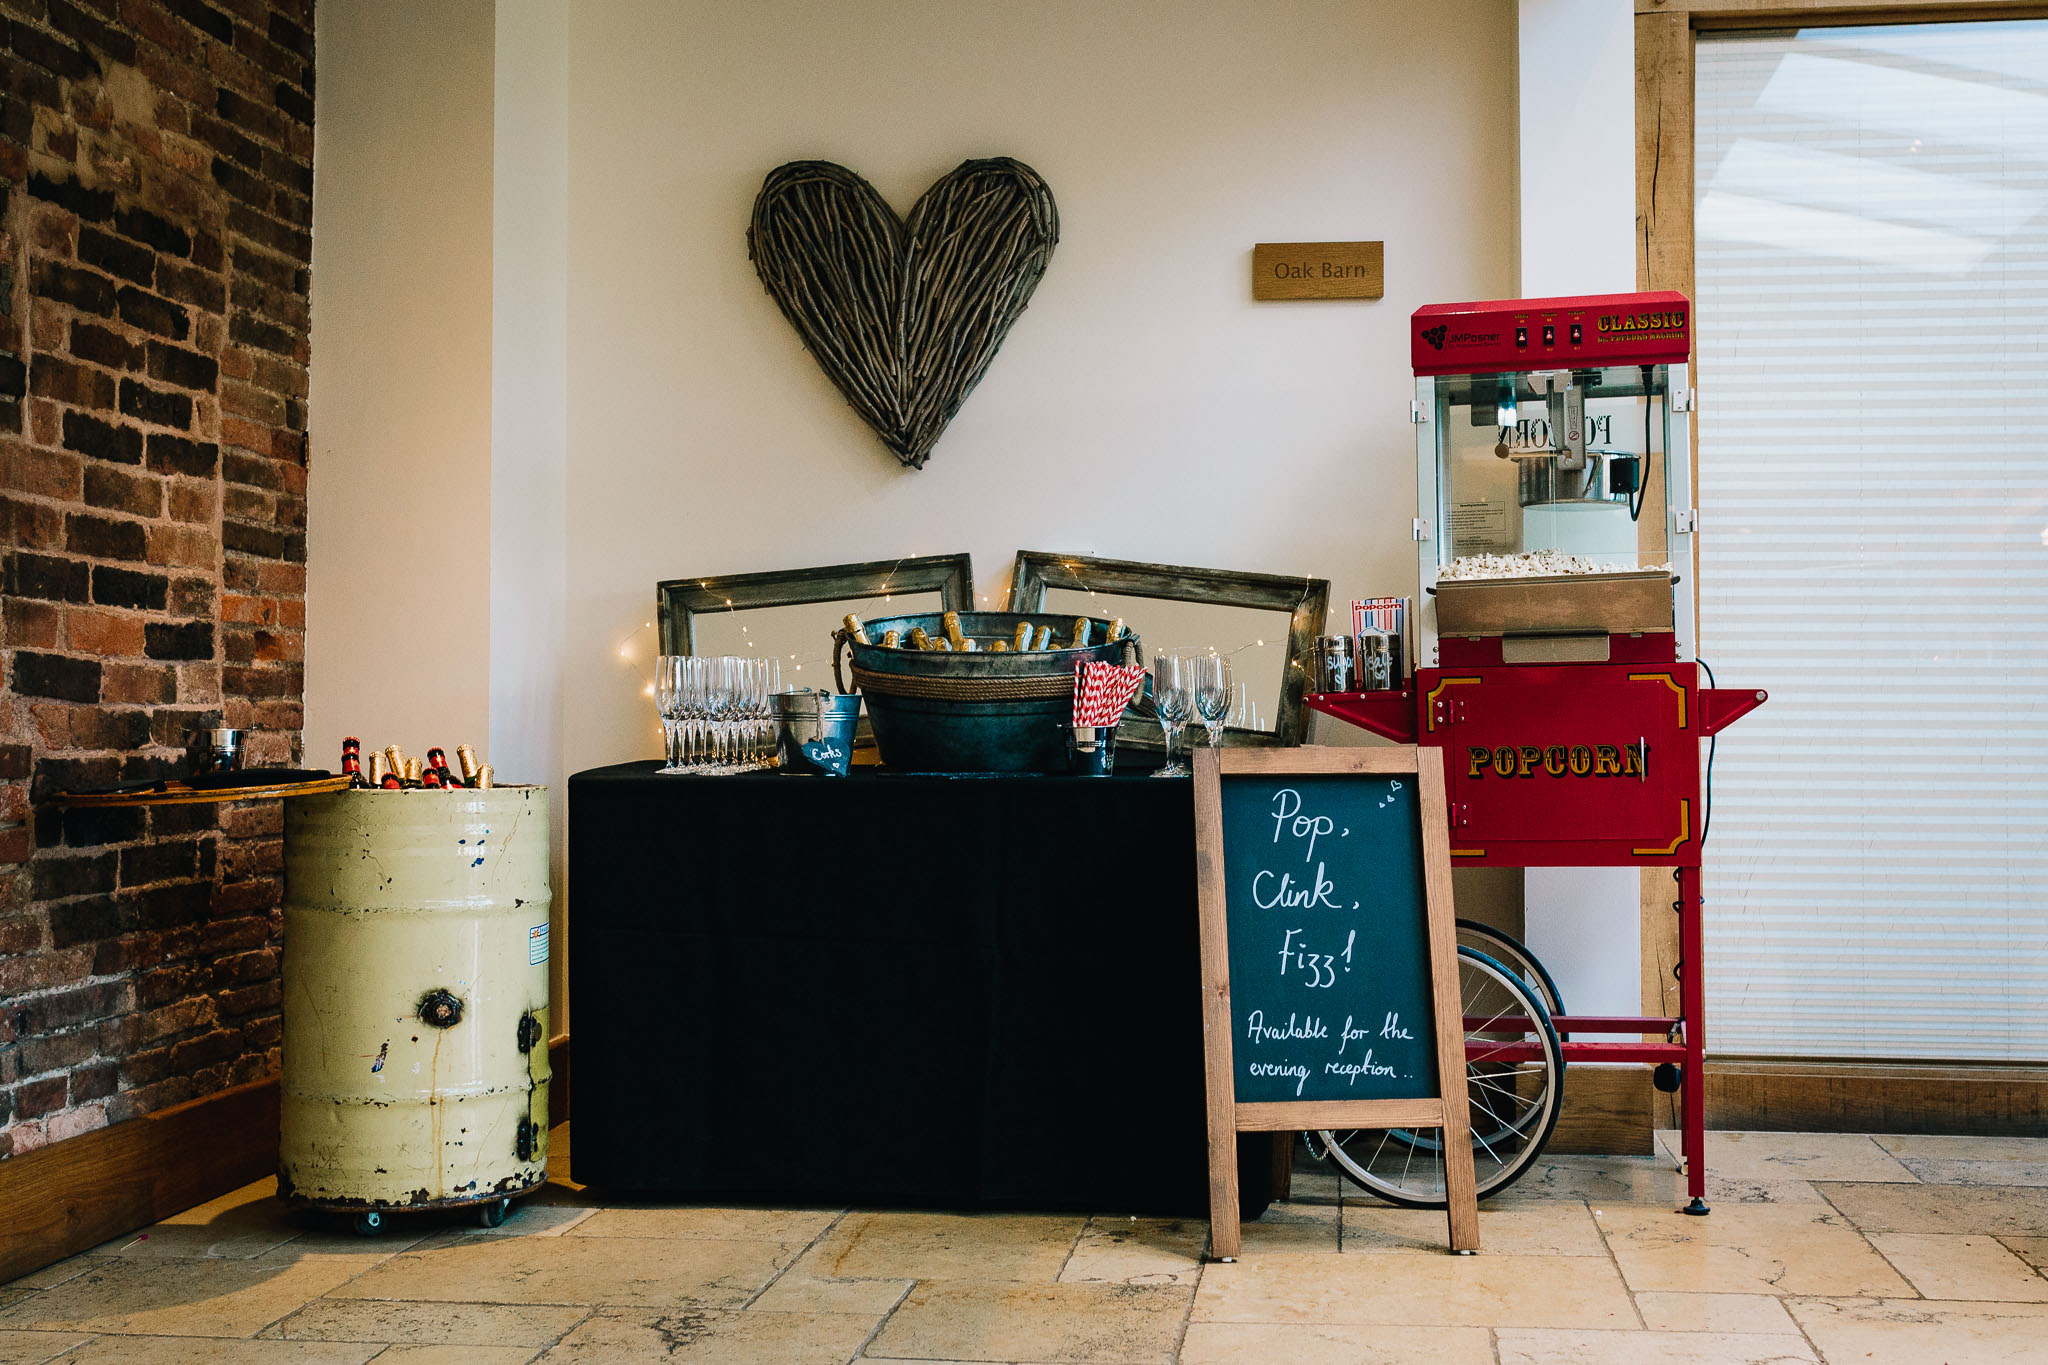 WEDDING POPCORN STAND AND PROSECCO DRUM